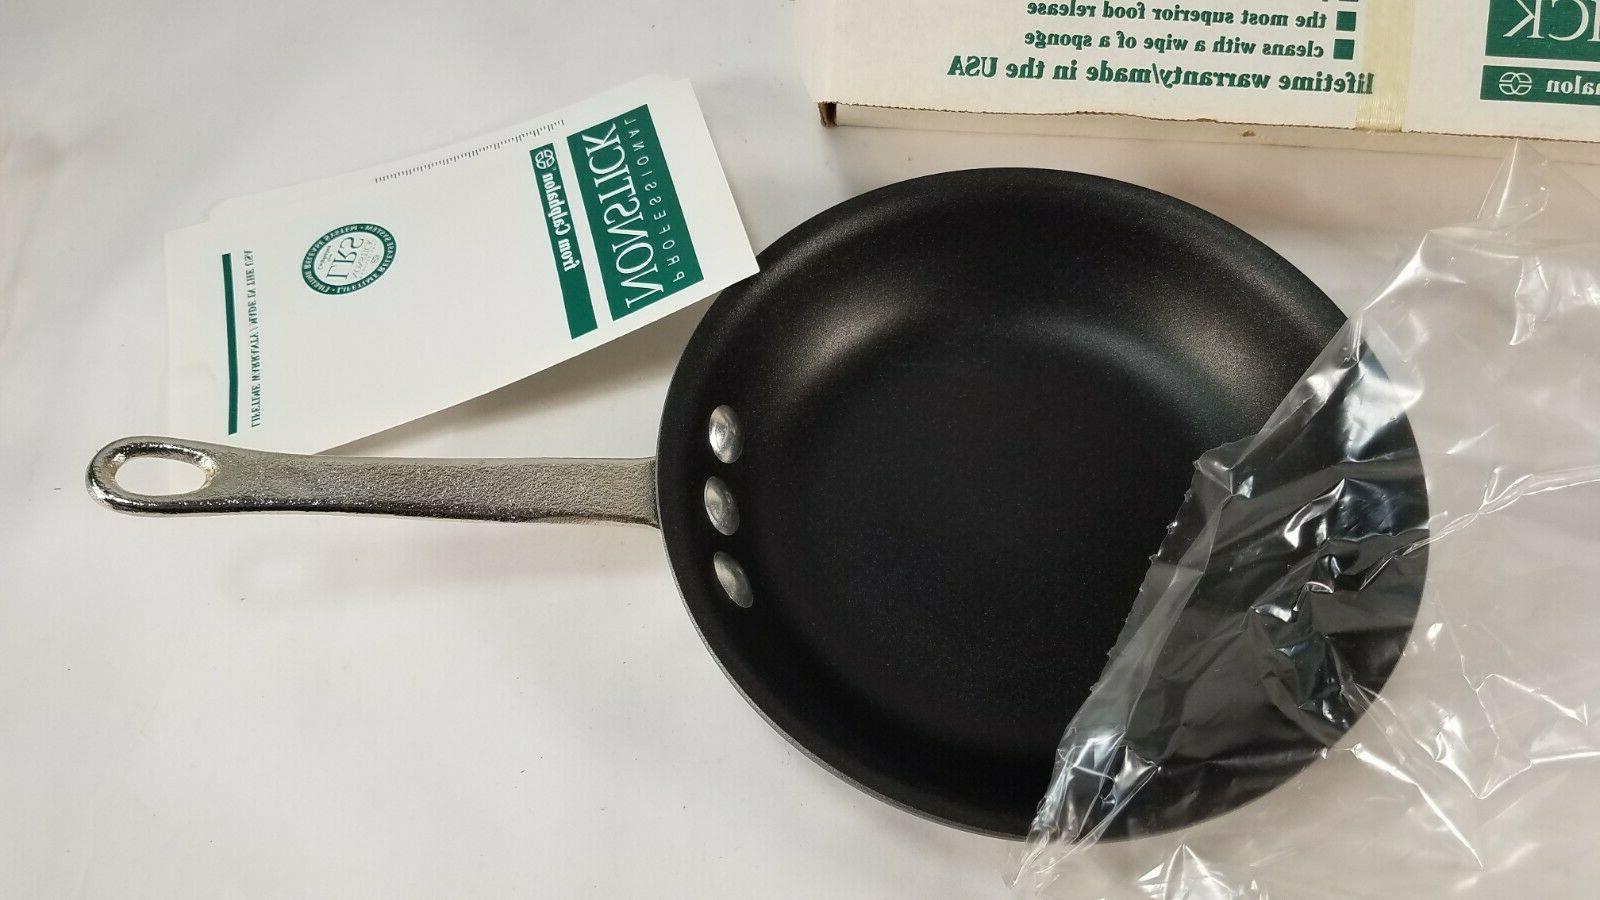 professional 7 omelette saute sear frying pan